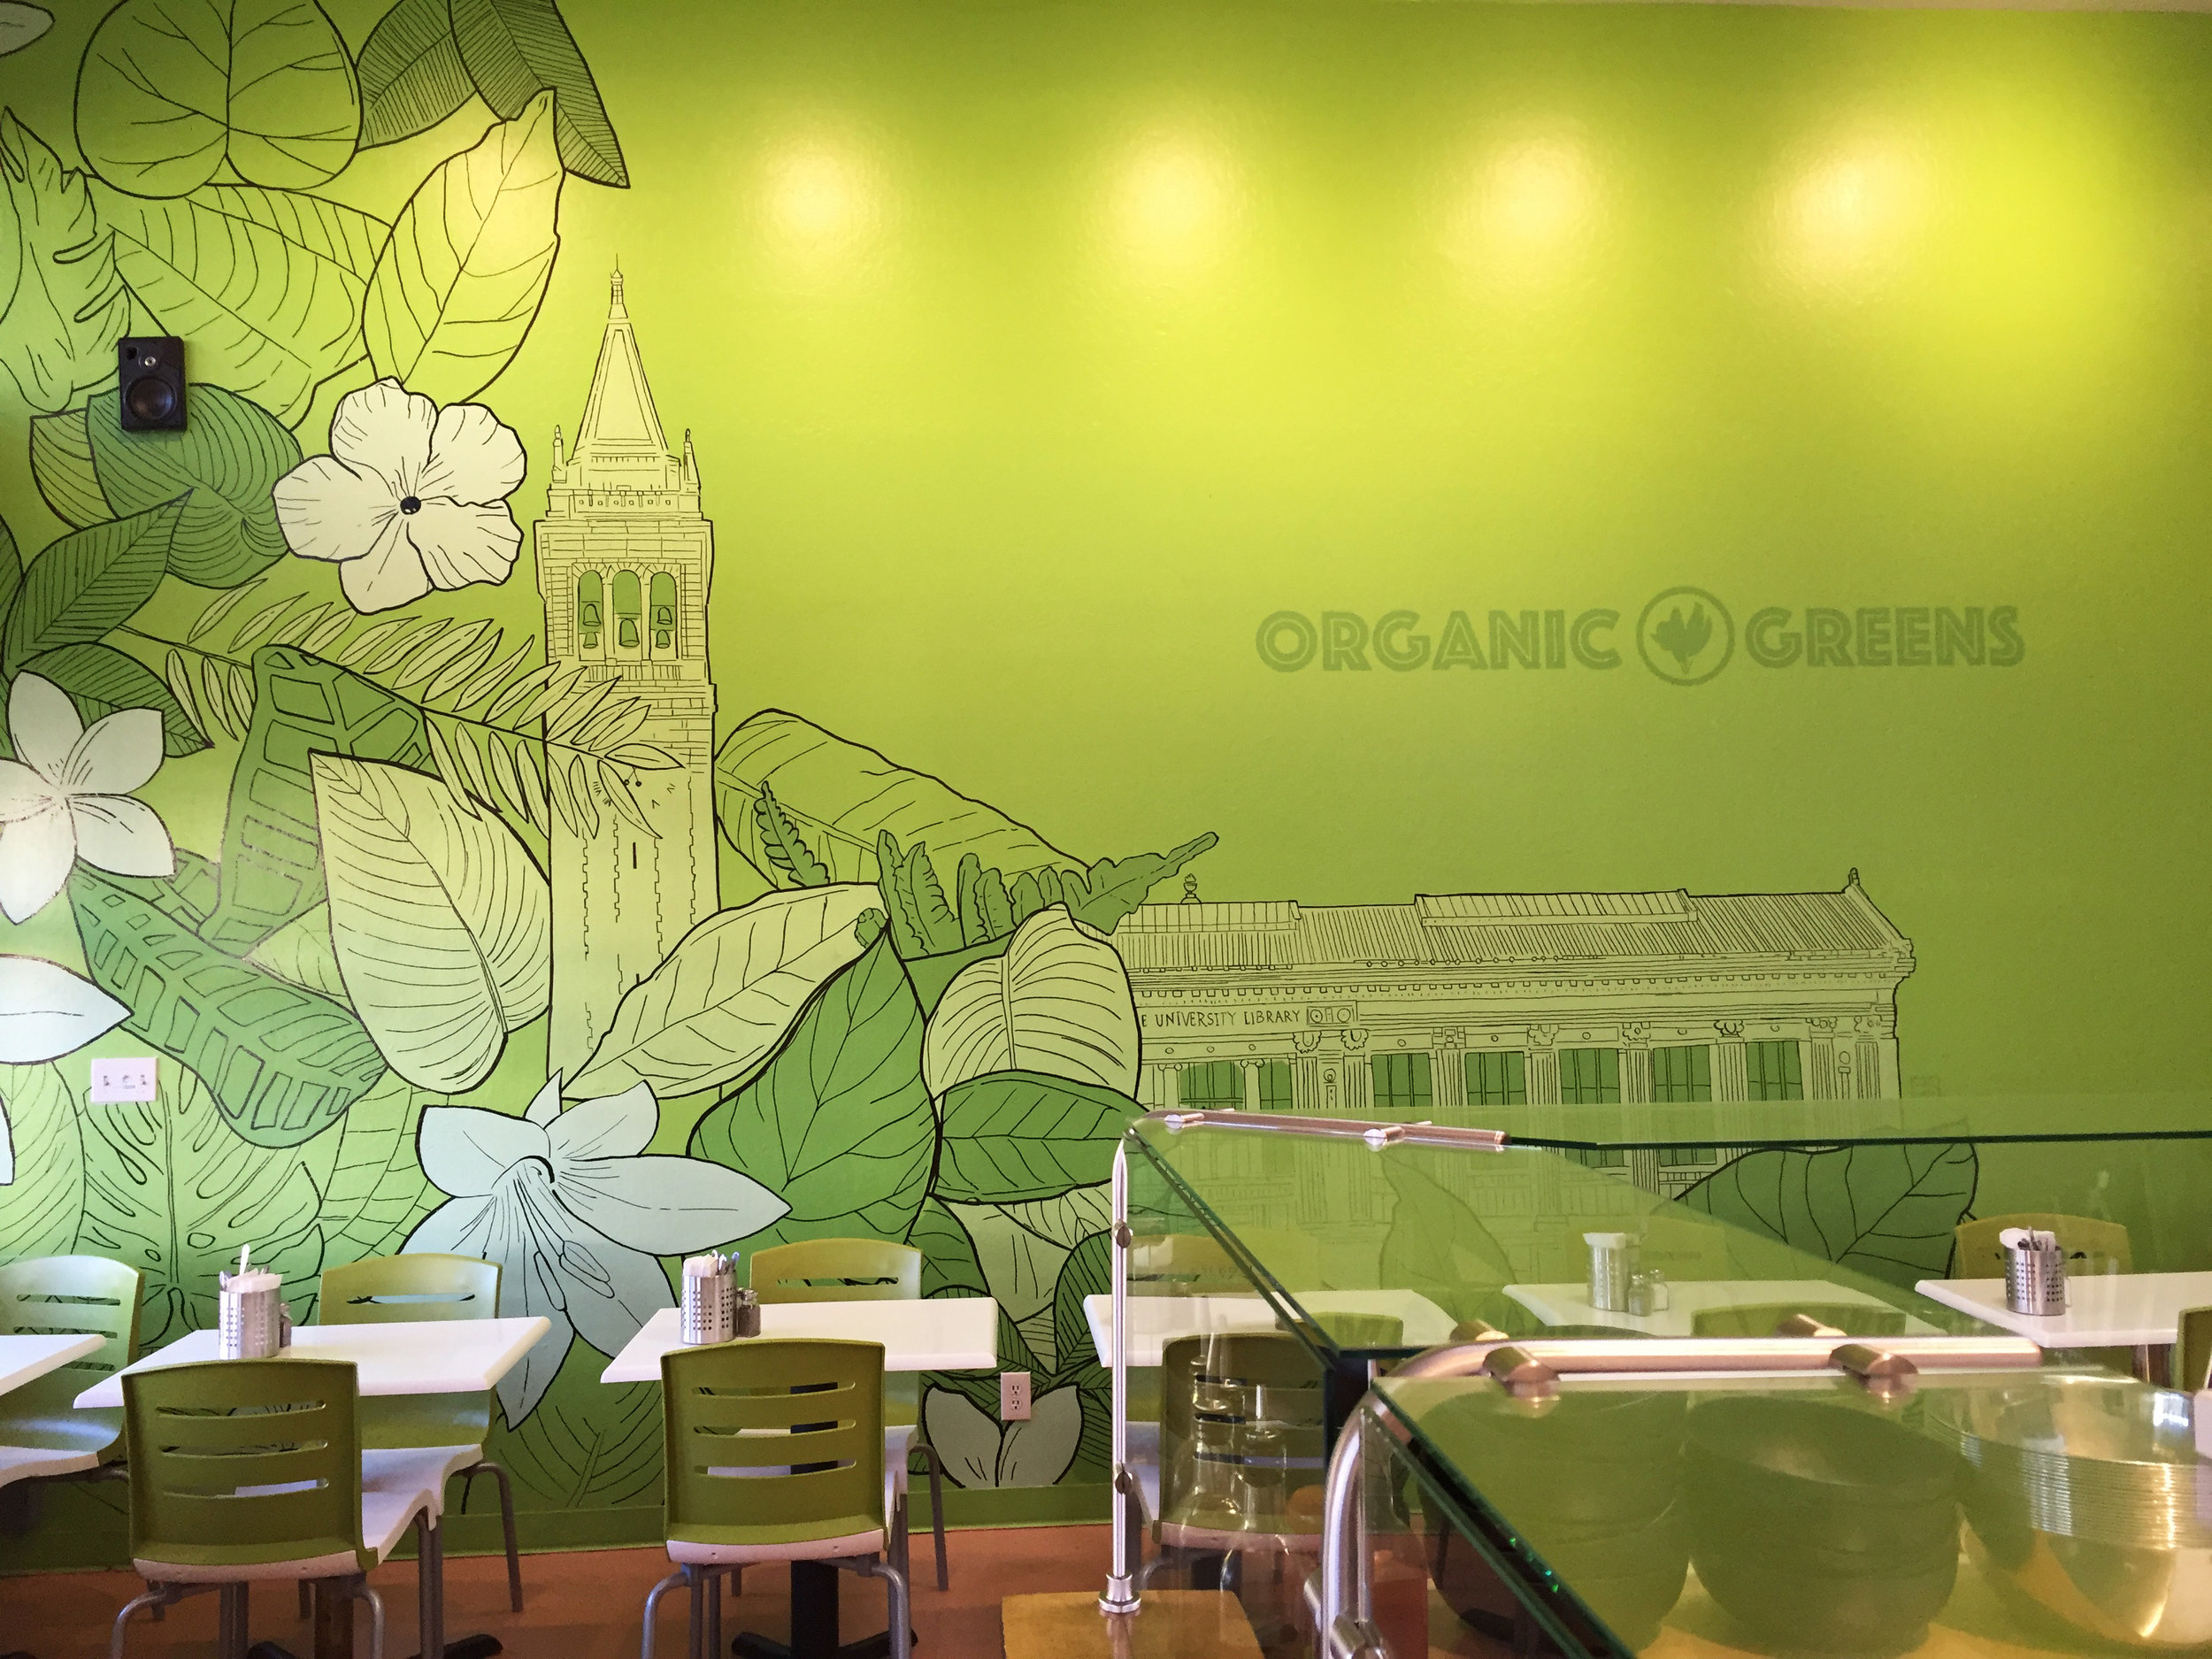 Office-commercial-mural-san-francisco-organic-greens-wall-and-wall-mural-company.jpeg